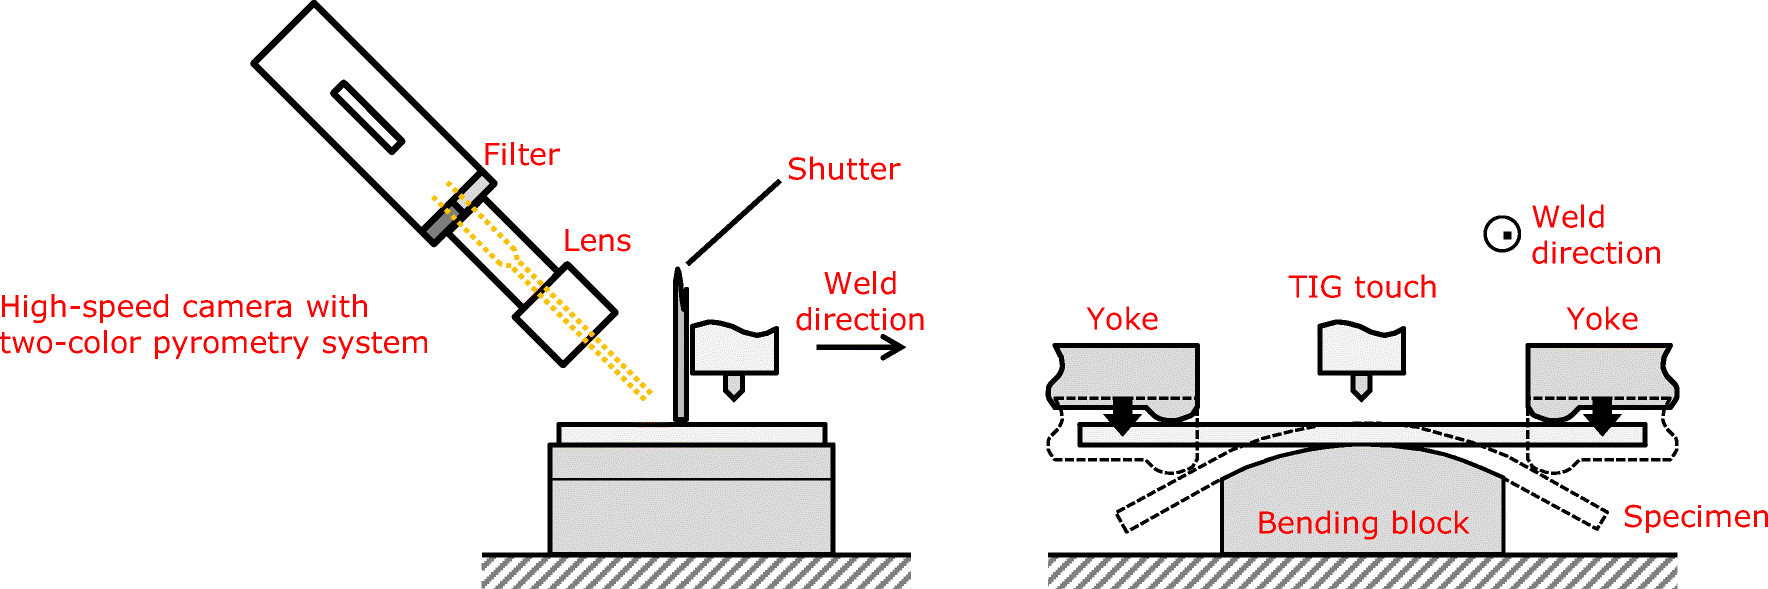 Determining The Btr By Conducting A Trans Varestraint Test Using Tig Welding Line Diagram Fig 5 Schematic Illustration